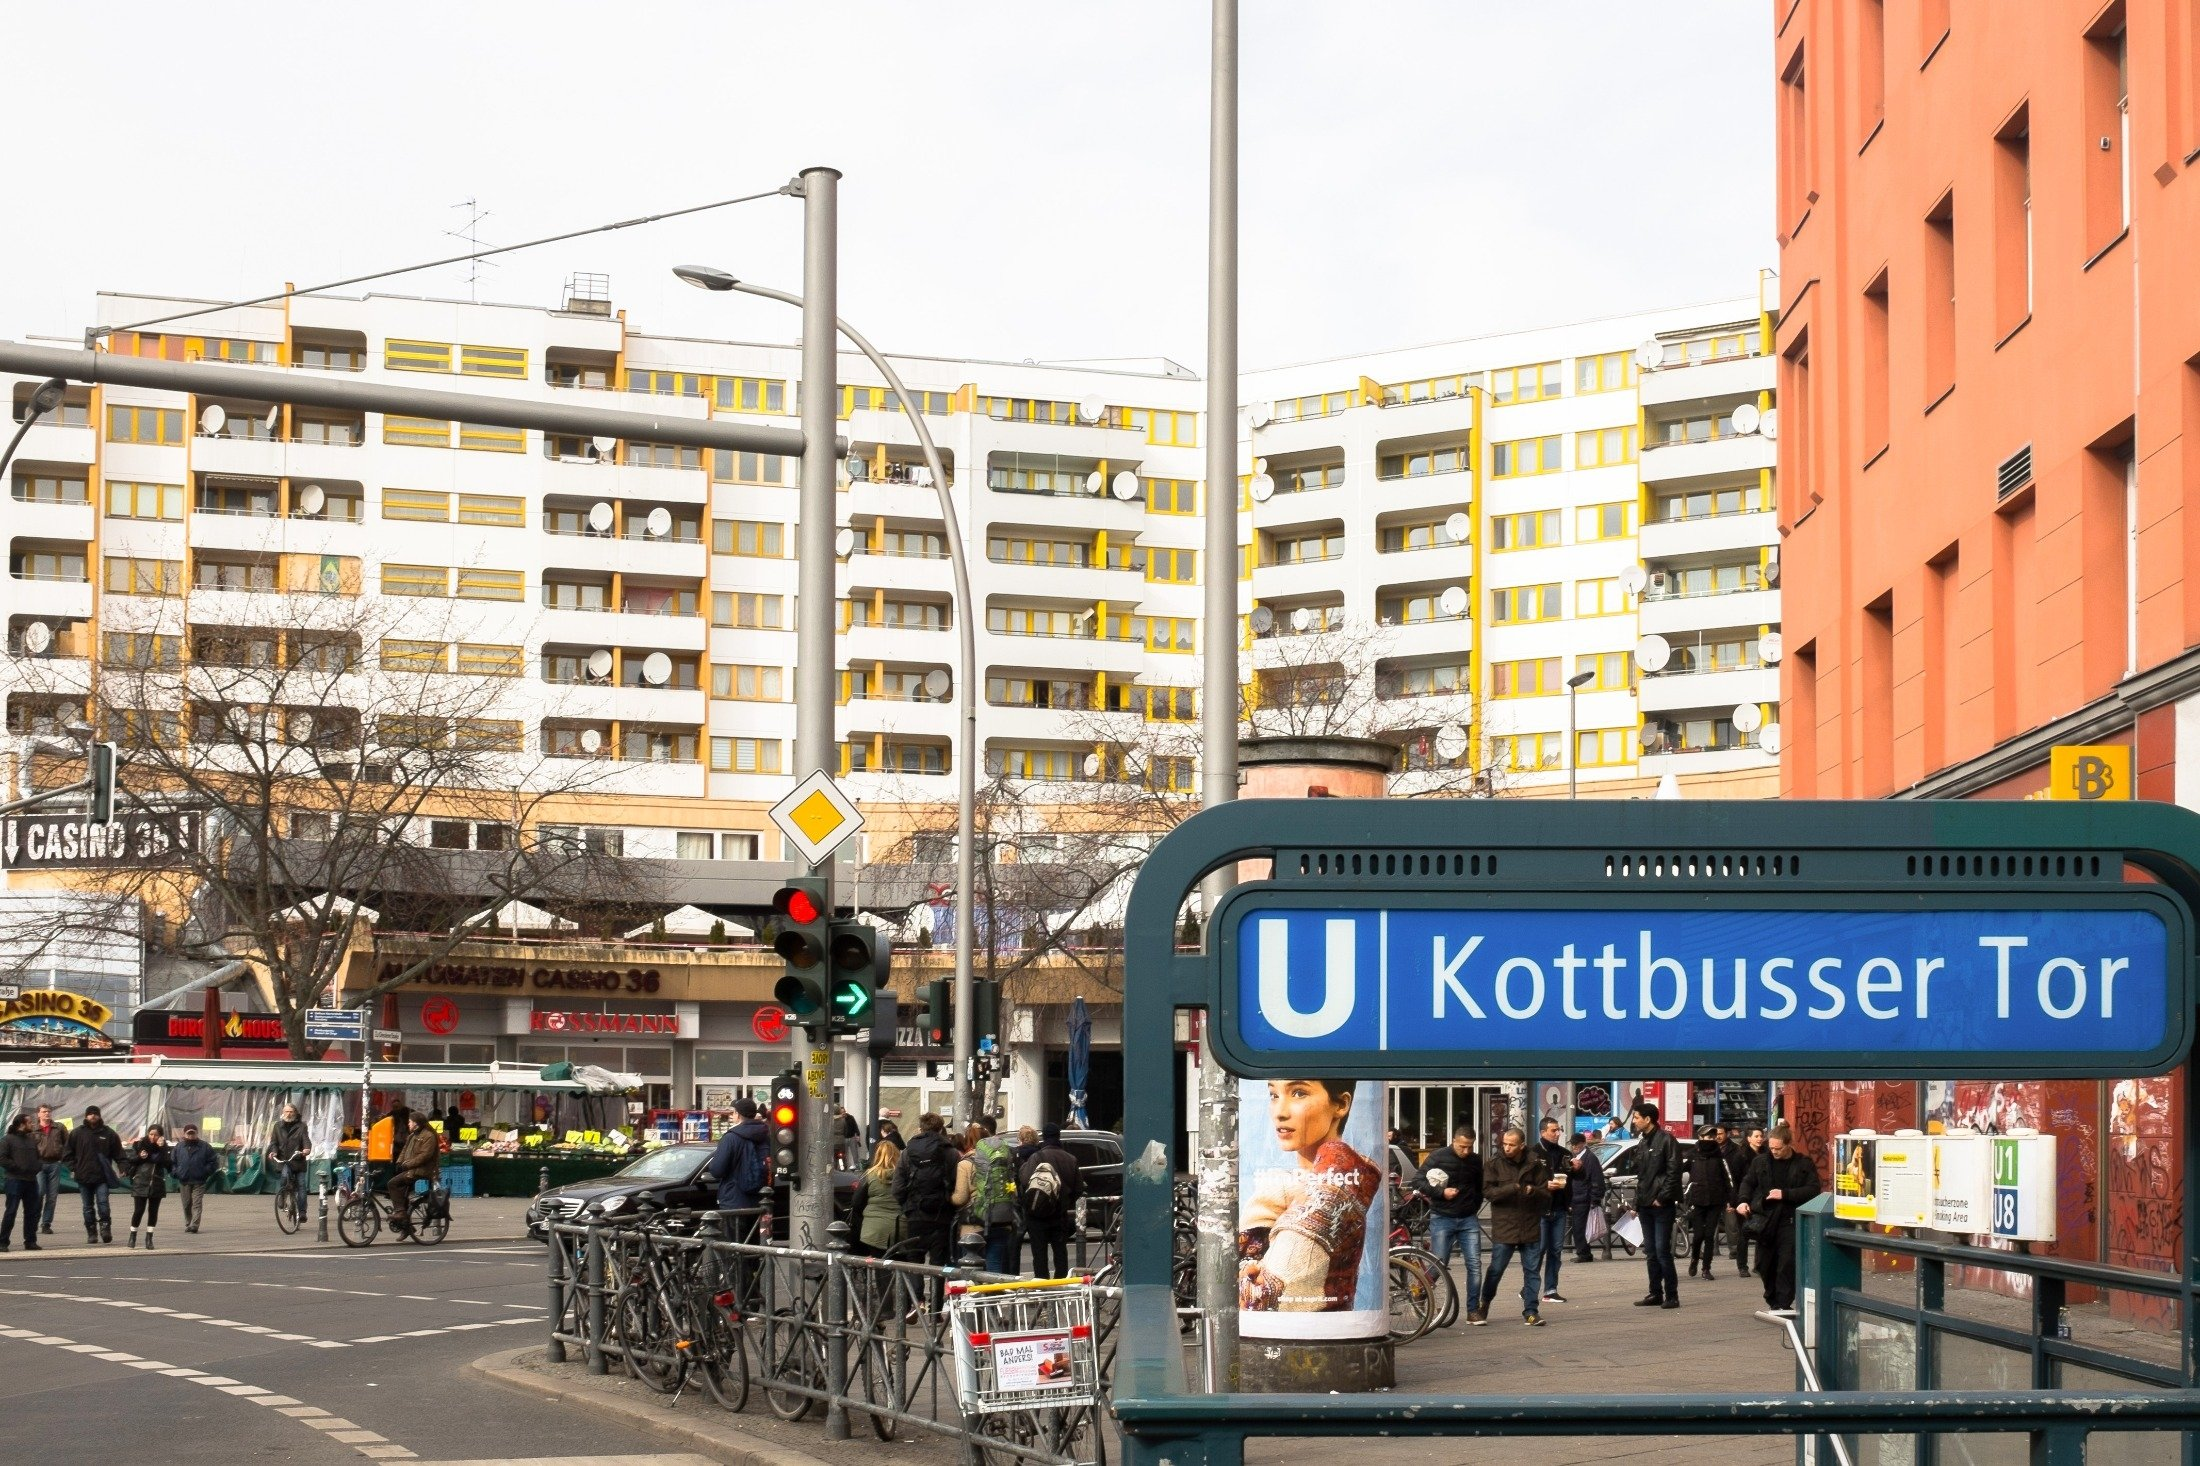 A sign for the Kottbusser Tor station can be seen in the SO36 in Kreuzberg district, Berlin, Germany, March 3, 2016. (Shutterstock Photo)